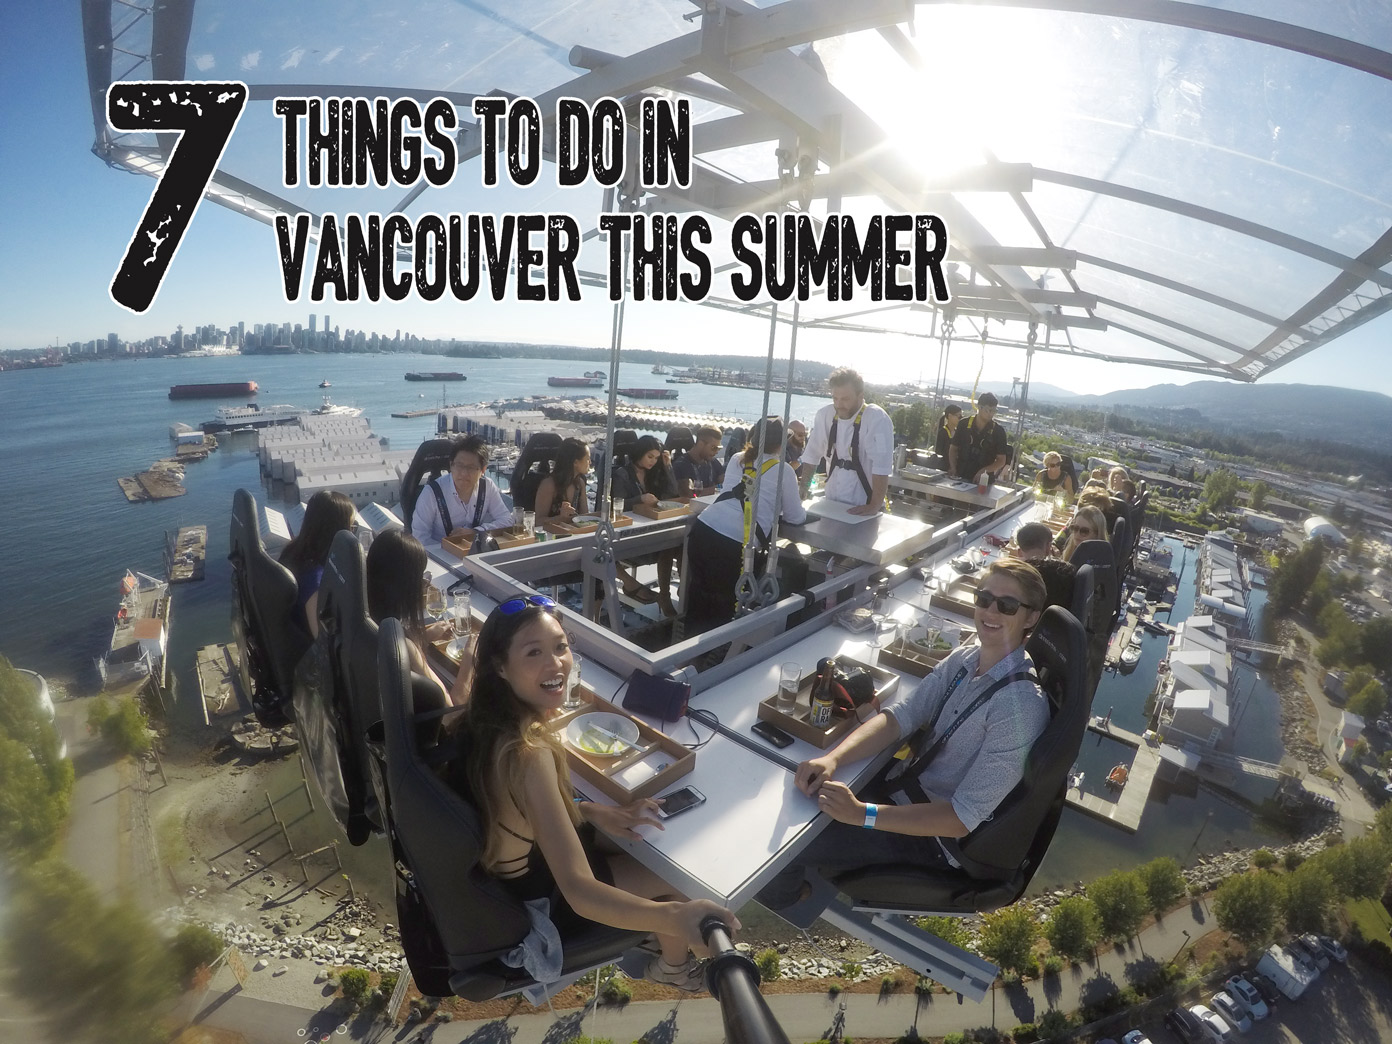 7 things to do in Vancouver